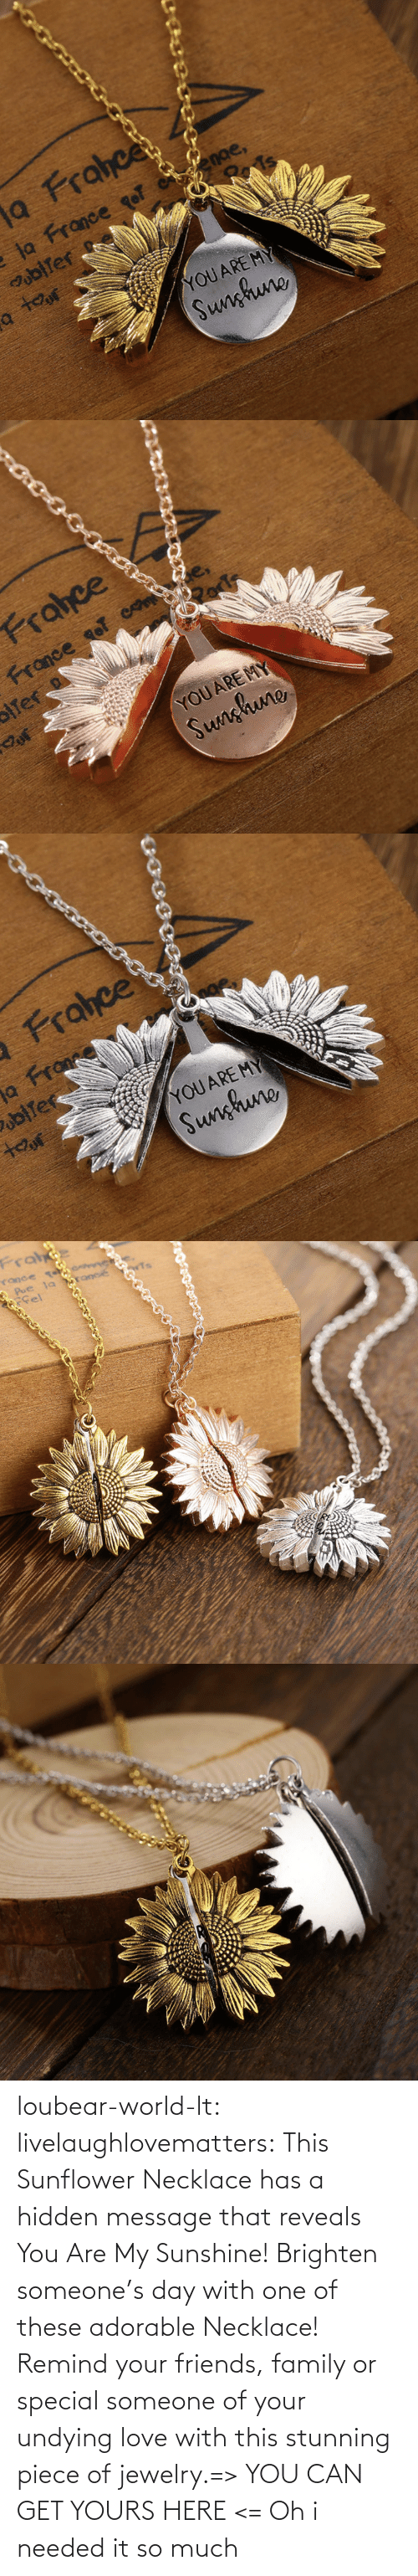 much: loubear-world-lt:  livelaughlovematters:  This Sunflower Necklace has a hidden message that reveals You Are My Sunshine! Brighten someone's day with one of these adorable Necklace! Remind your friends, family or special someone of your undying love with this stunning piece of jewelry.=> YOU CAN GET YOURS HERE <=   Oh i needed it so much